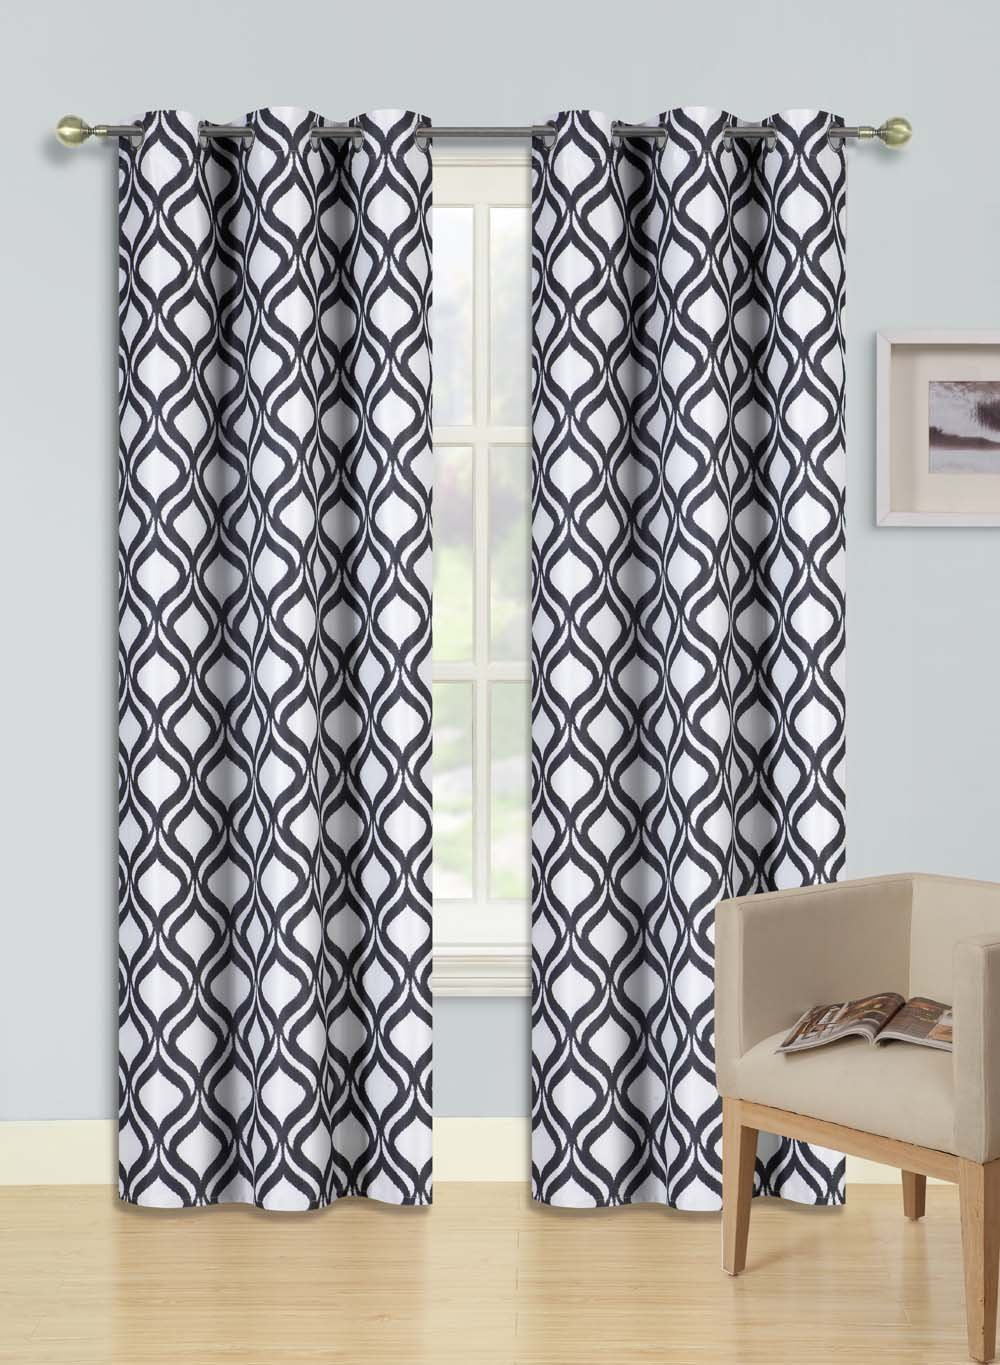 BLACKOUT HEAVY THICK WINDOW CURTAIN DRAPES SILVER GROMMETS BLACK SWIRLS